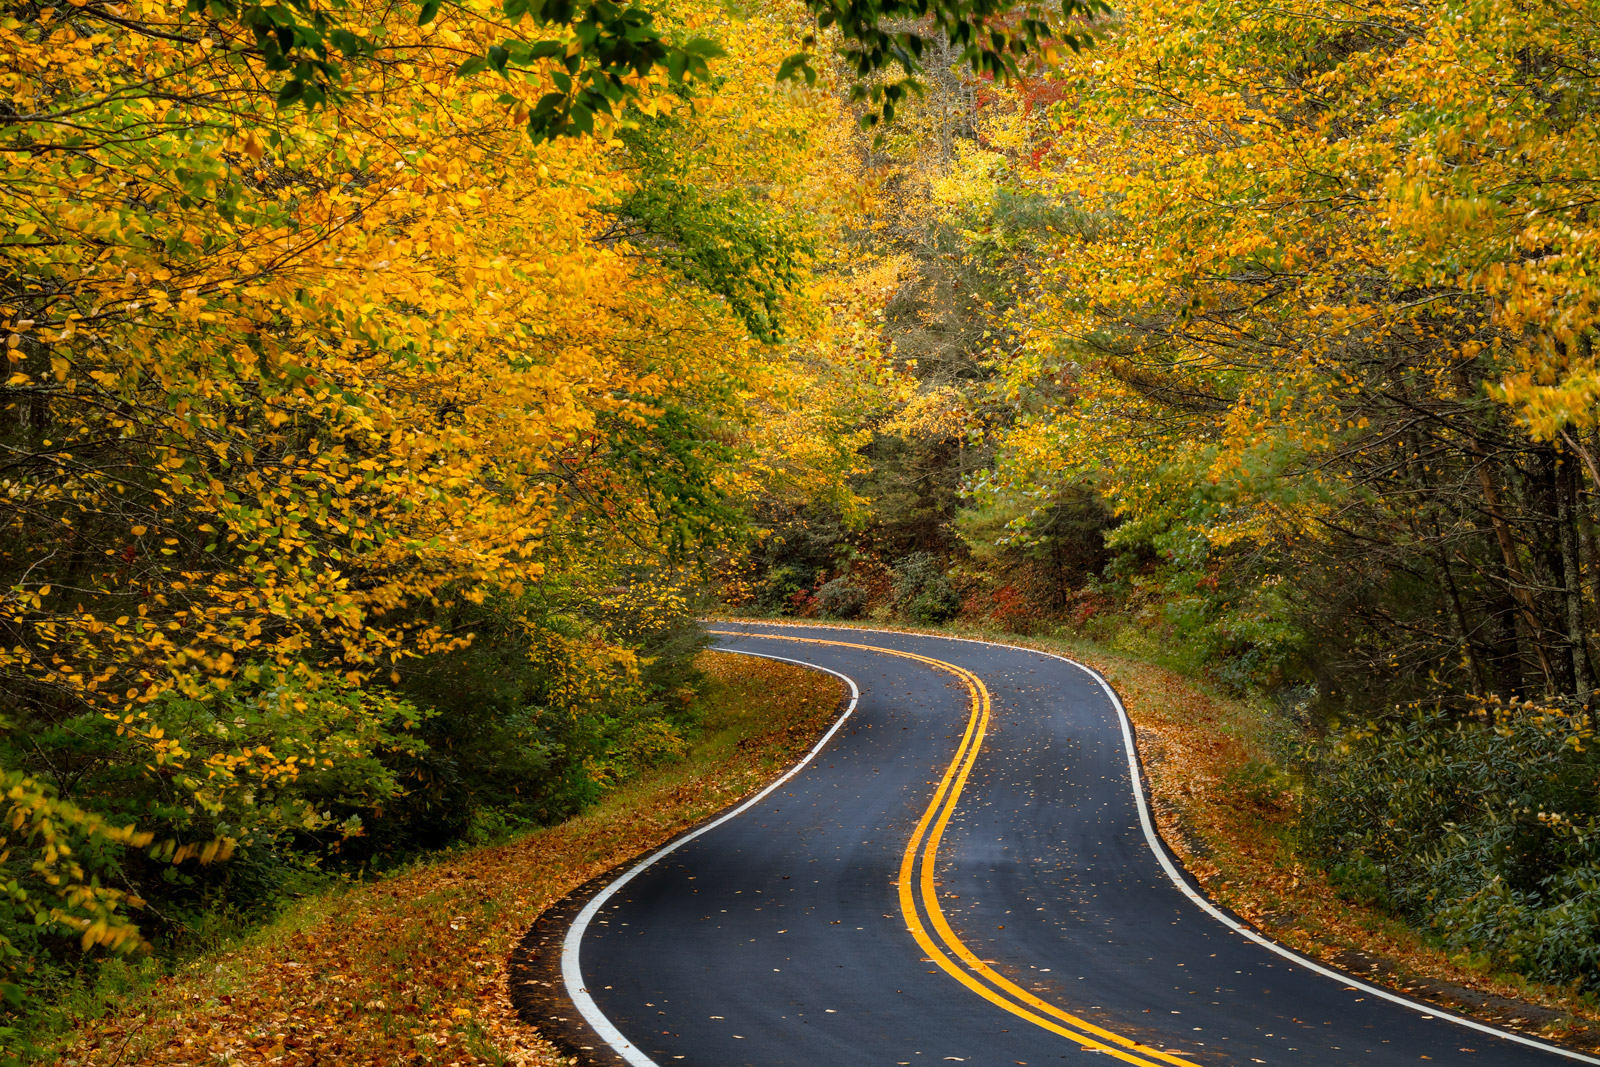 Georgia, Chatahoochee, Fall Color, Fall, Mountain, Road, limited edition, photograph, photo